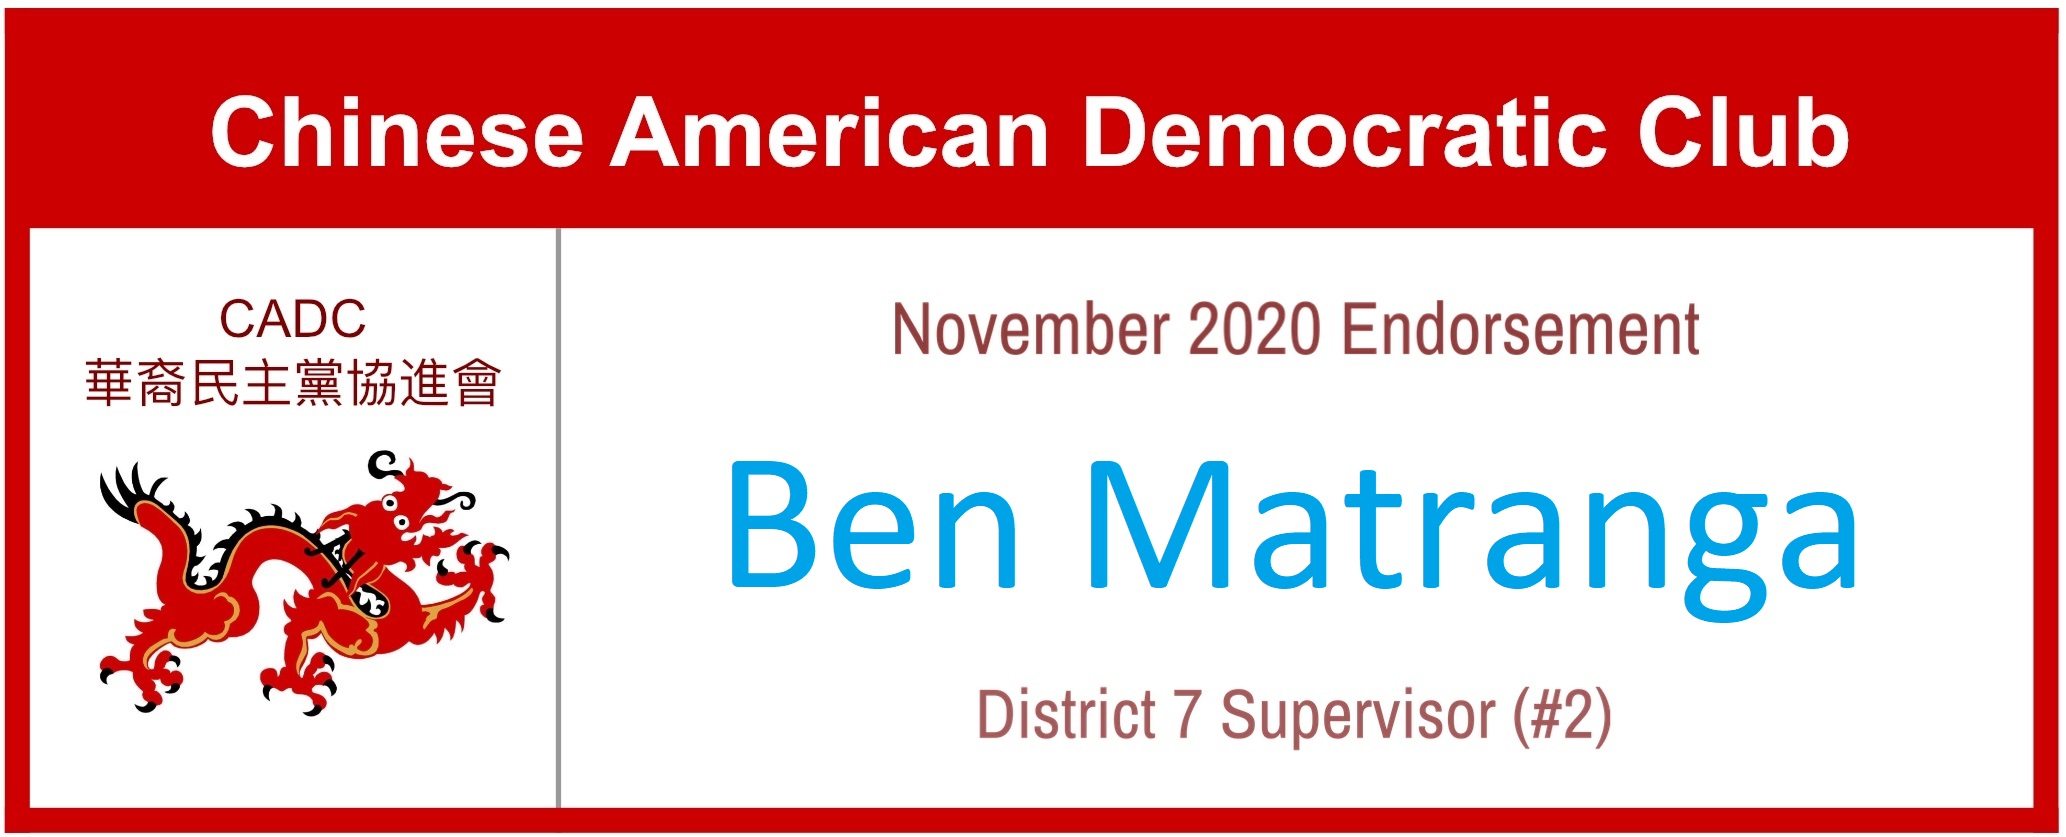 Ben Matranga for District 7 Supervisor - CADC #2 Endorsement November 2020